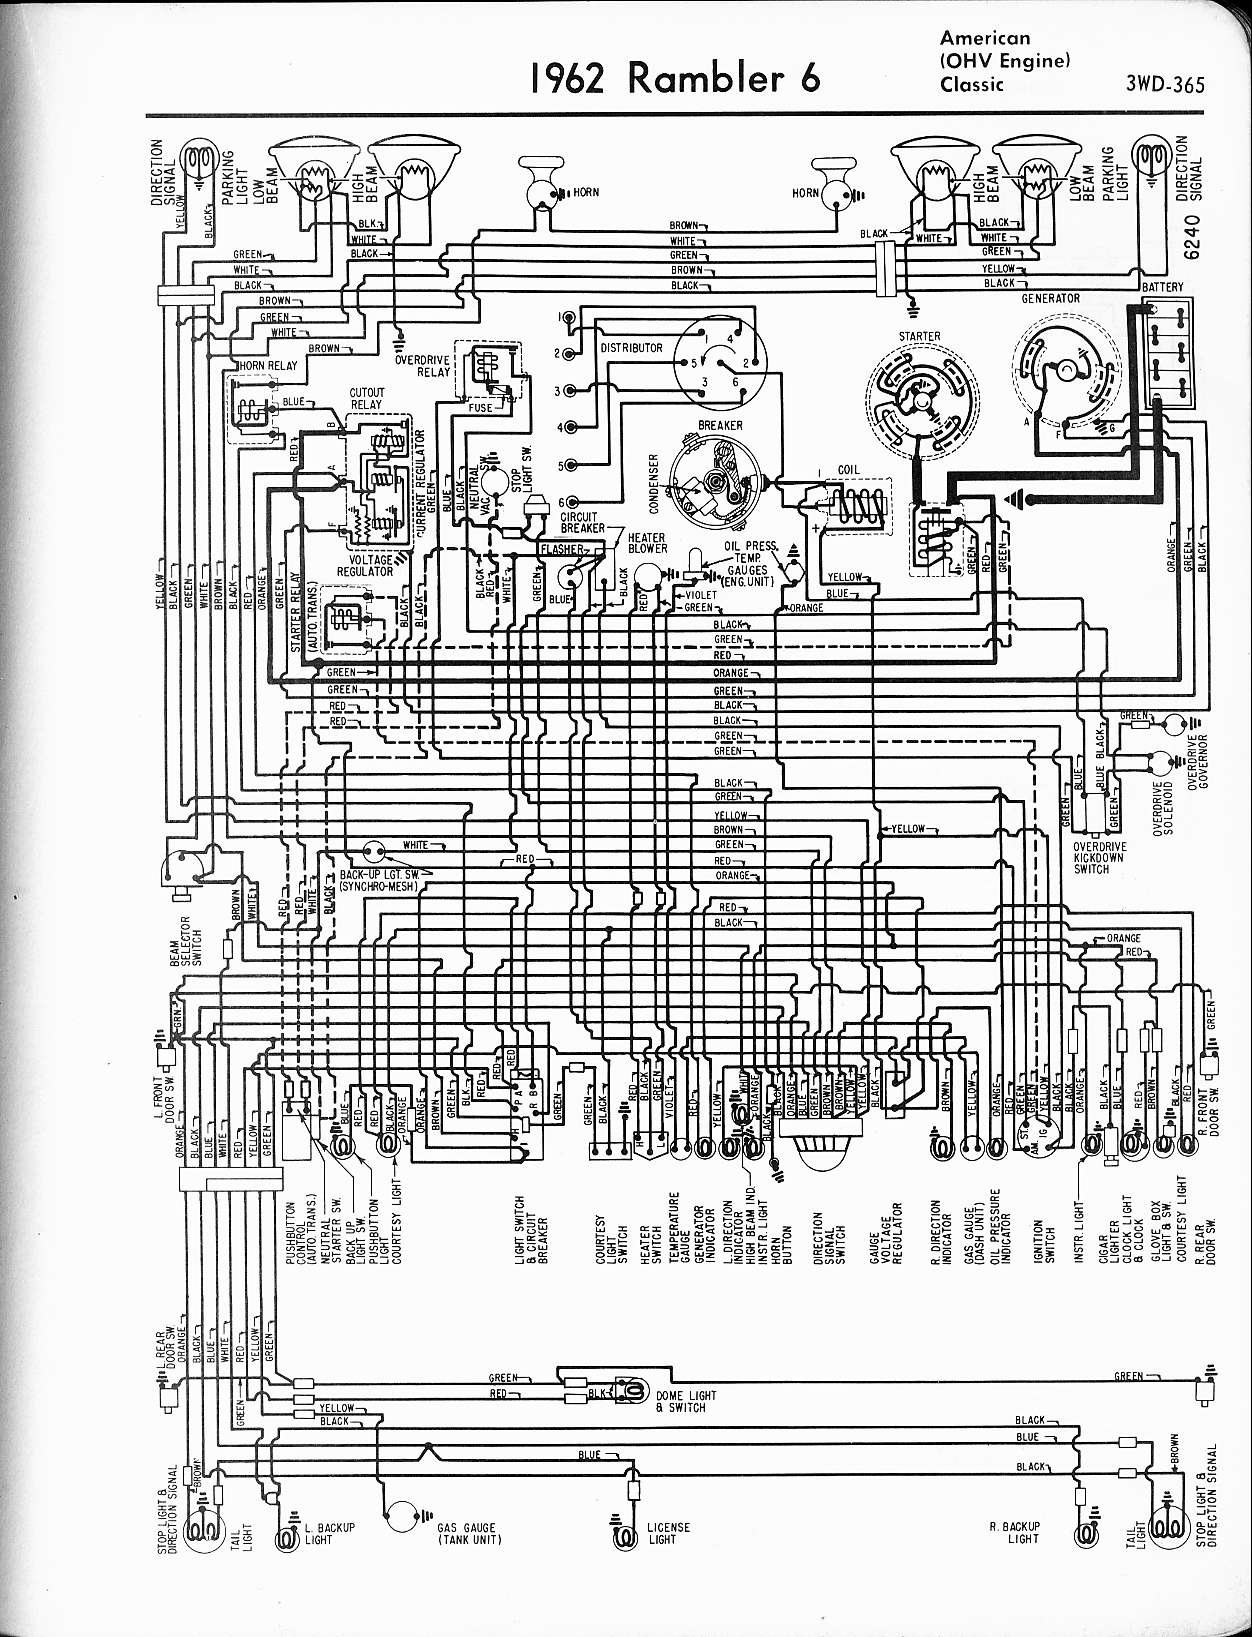 1967 rambler rebel wiring diagram wiring data u2022 rh maxi mail co 1968 AMC Rebel SST 1968 AMC Rebel SST